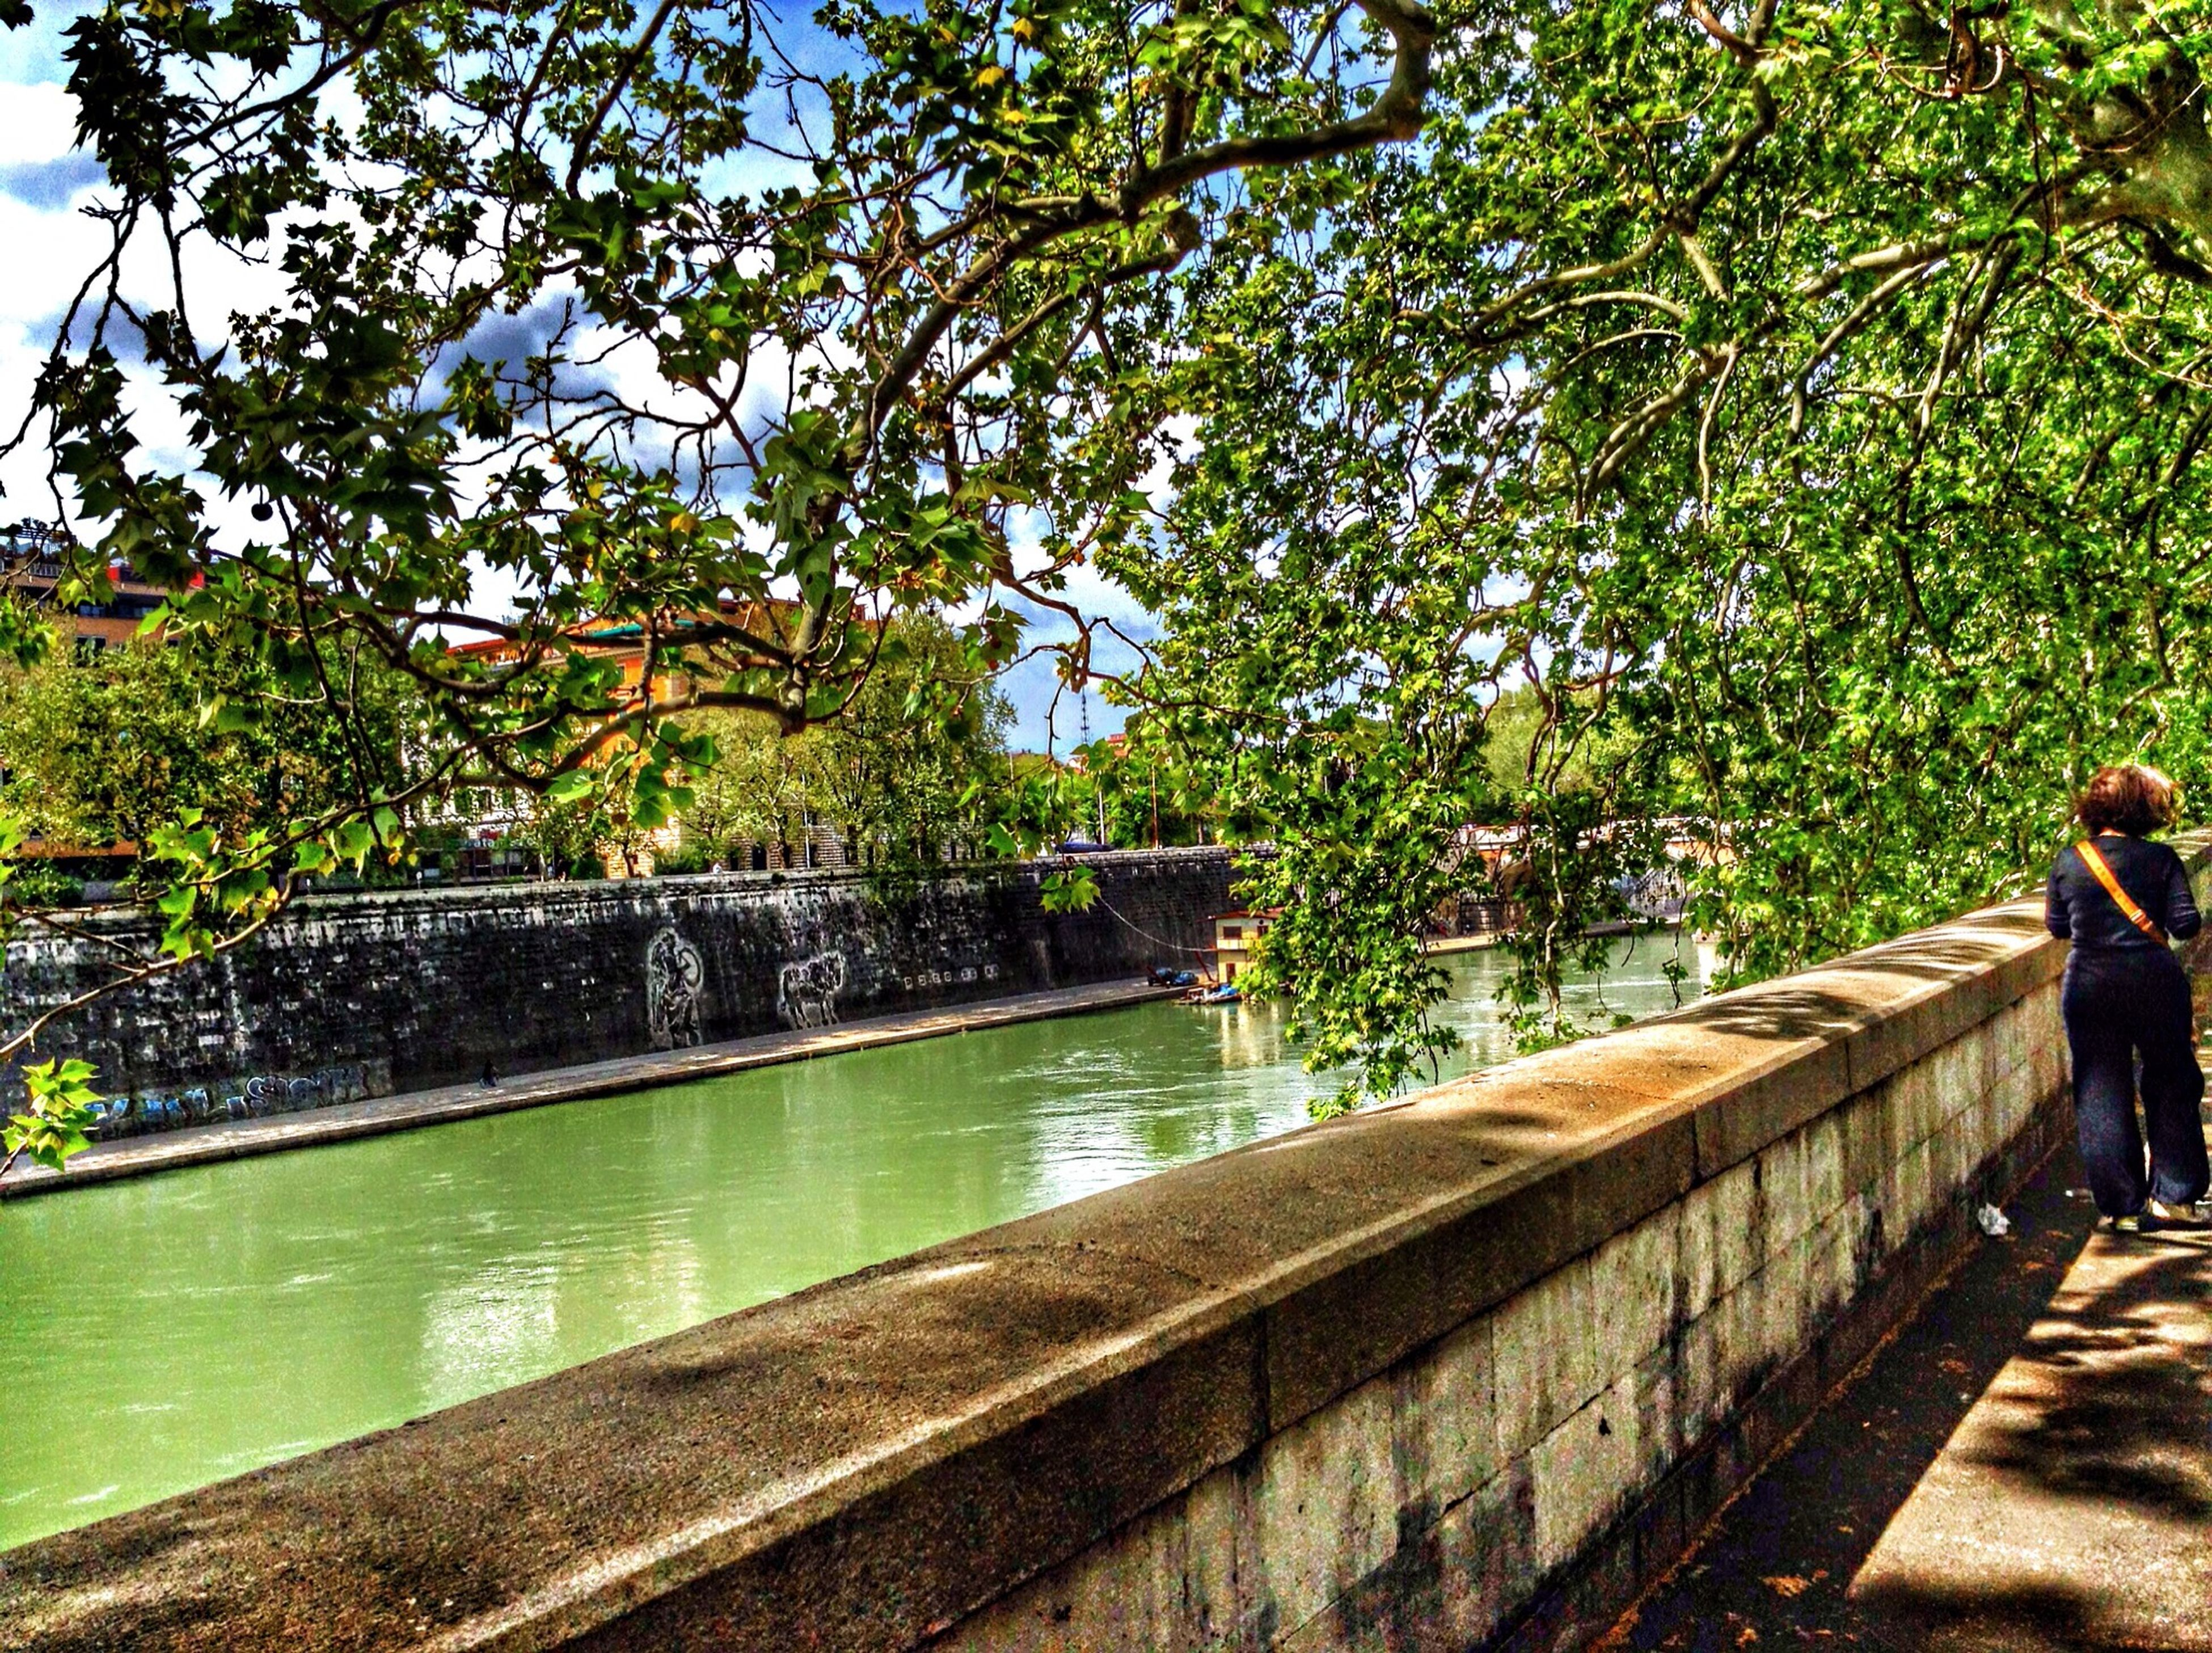 tree, water, railing, built structure, river, bridge - man made structure, architecture, lifestyles, growth, lake, nature, reflection, men, leisure activity, day, sky, canal, park - man made space